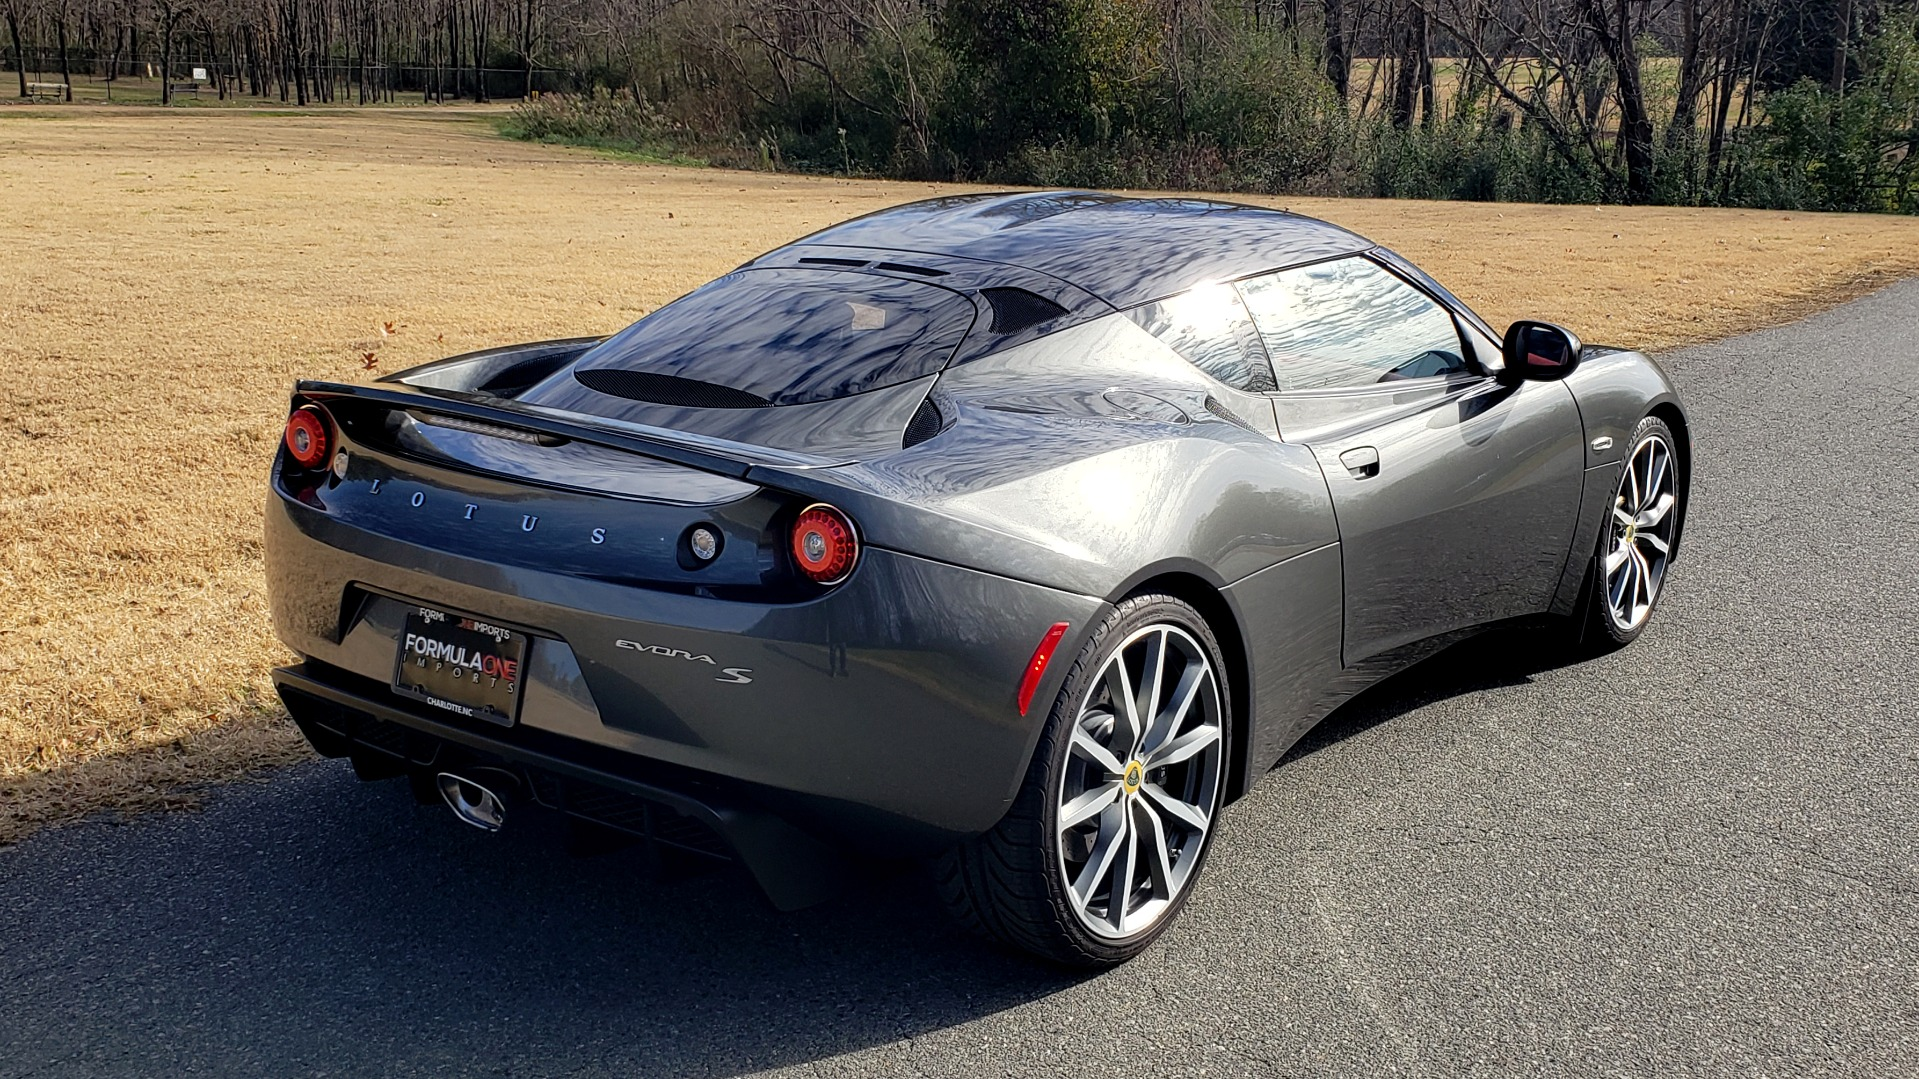 Used 2011 Lotus EVORA S 2+2 / 3.5L V6 / 6-SPD MANUAL / PIONEER / REARVIEW / LOW MILES for sale Sold at Formula Imports in Charlotte NC 28227 7